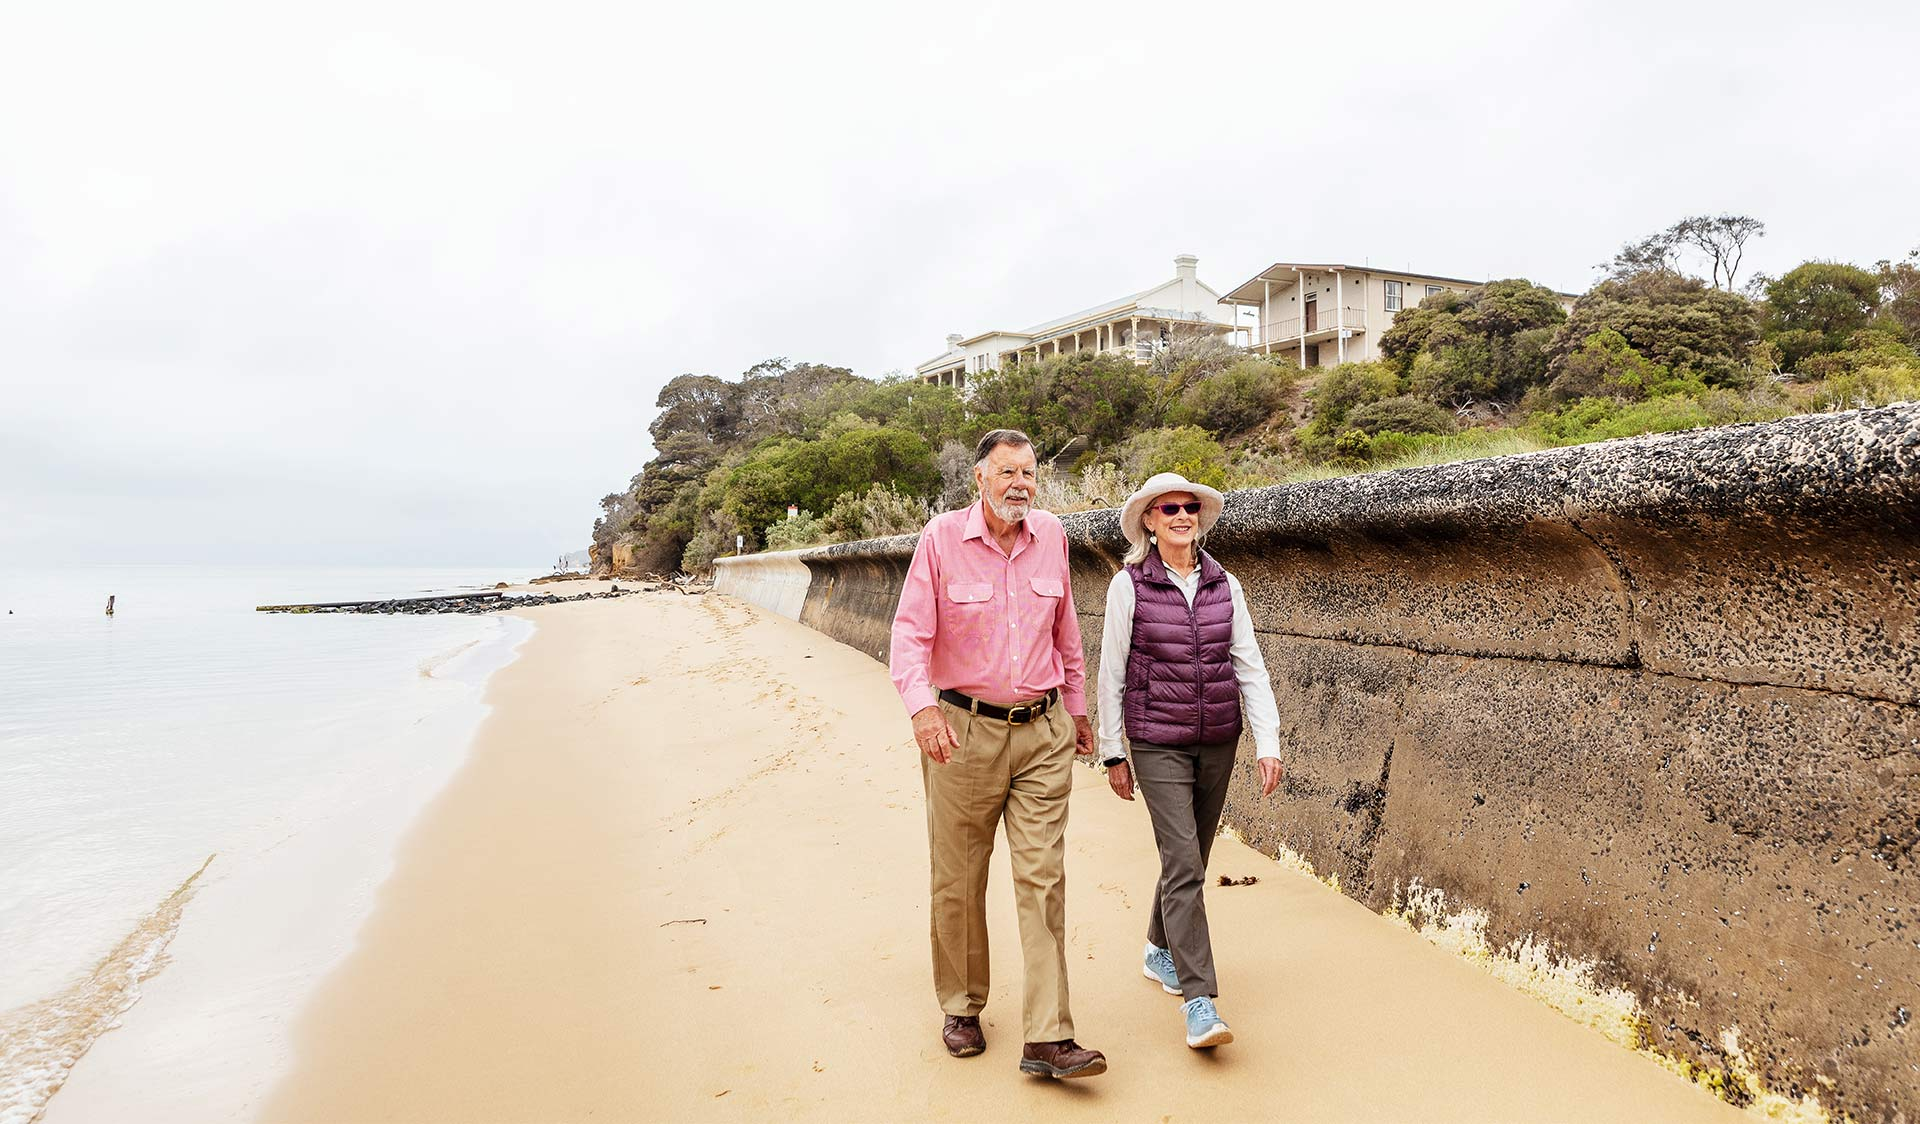 An elderly couple walking along the beach together at the Quarantine Station in Point Nepean National Park